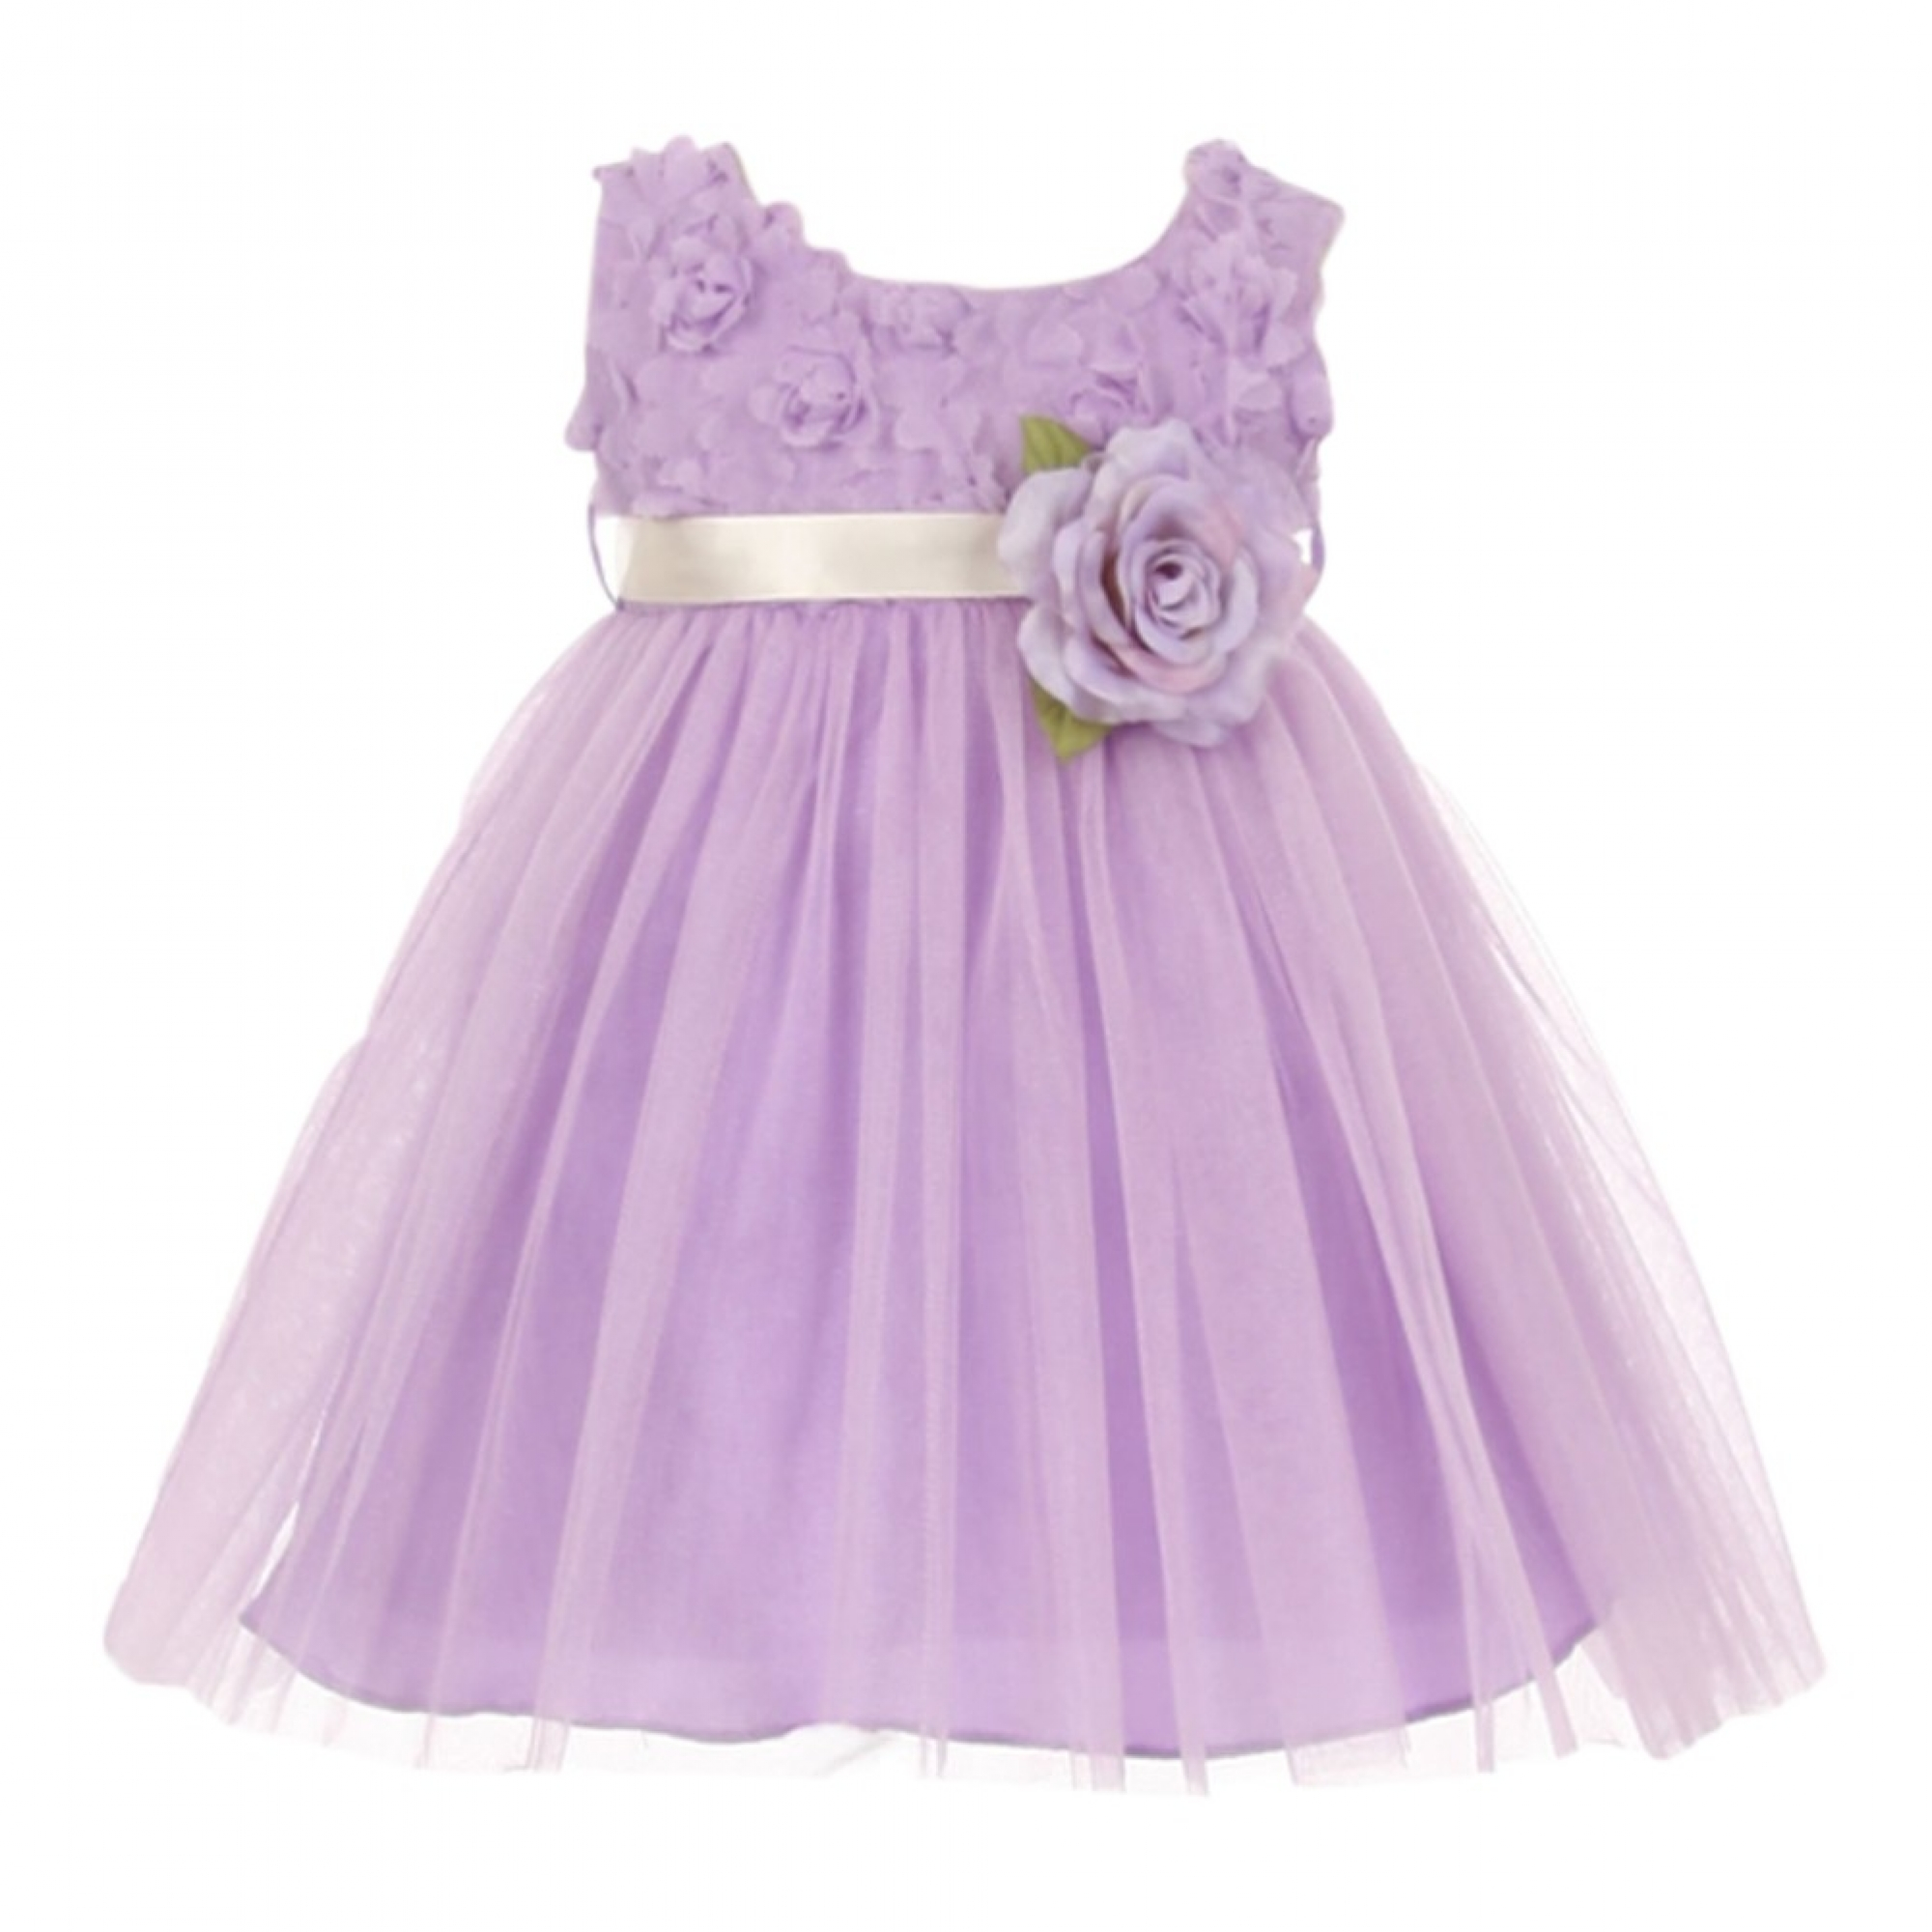 Lilac Baby Clothes Newest and Cutest Baby Clothing Collection by